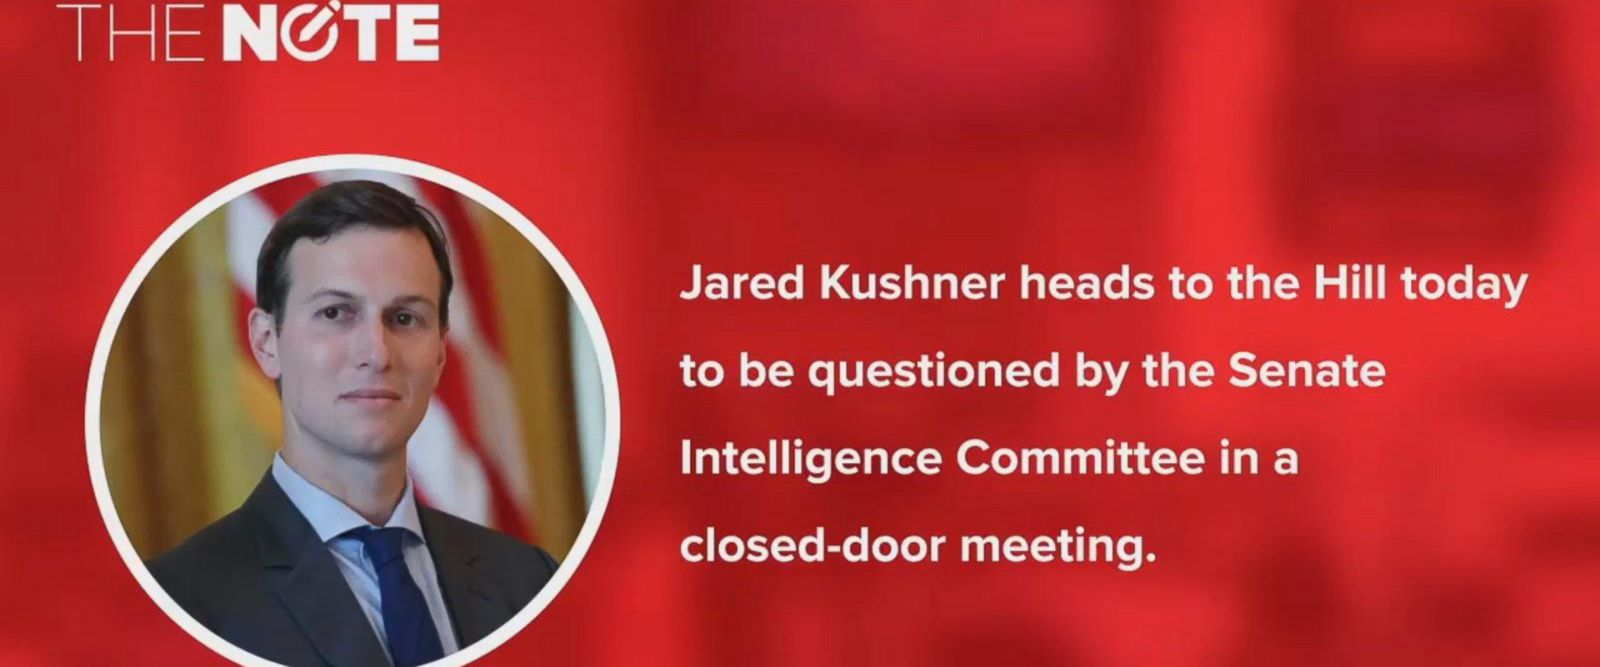 VIDEO: The Note: Jared Kushner caught up in Russia probe